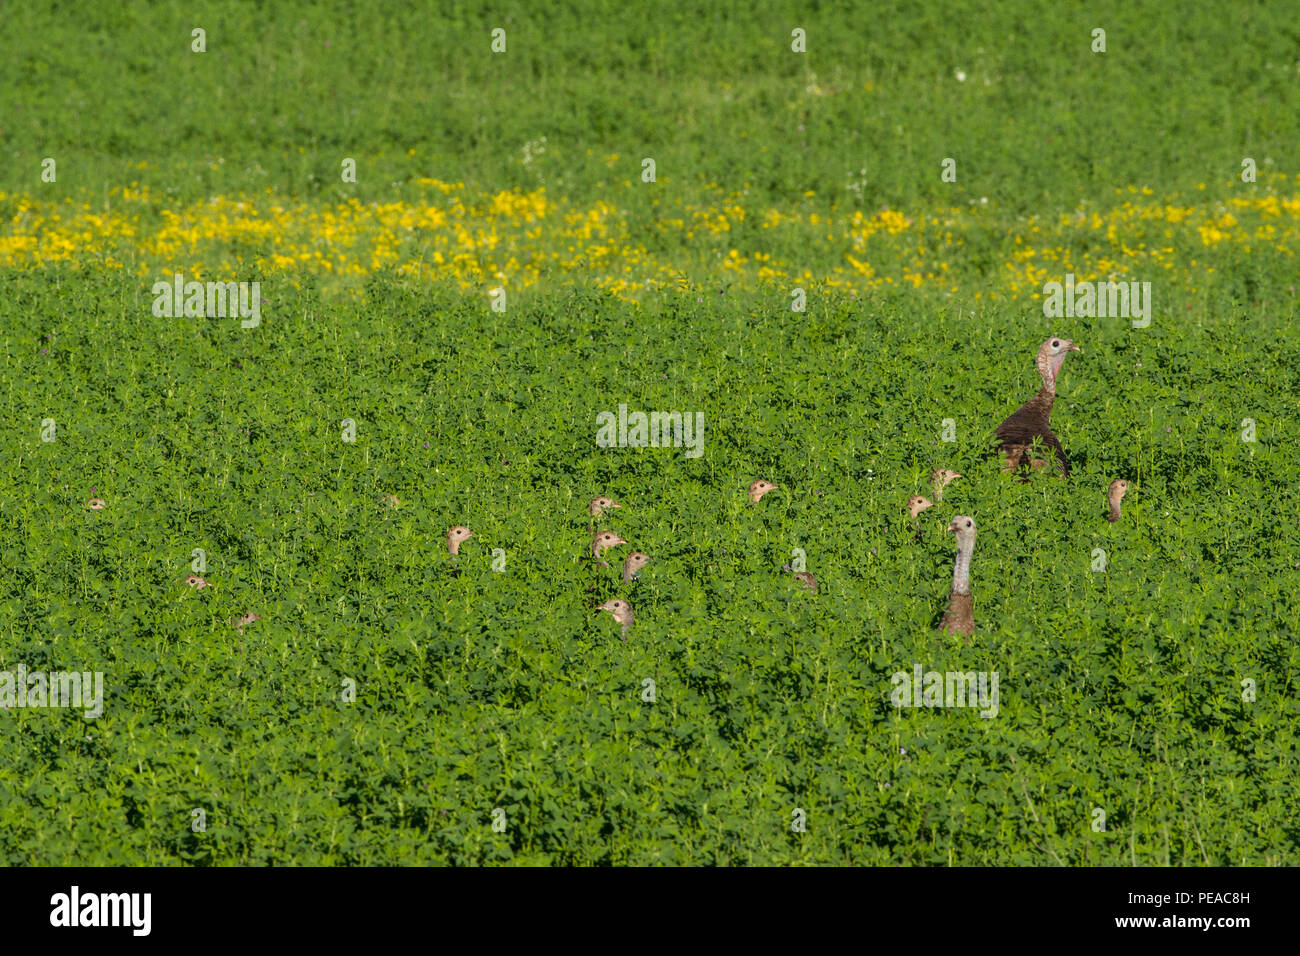 A flock of wild turkey (Meleagris gallopavo) young hiding in a field of alfalfa. - Stock Image